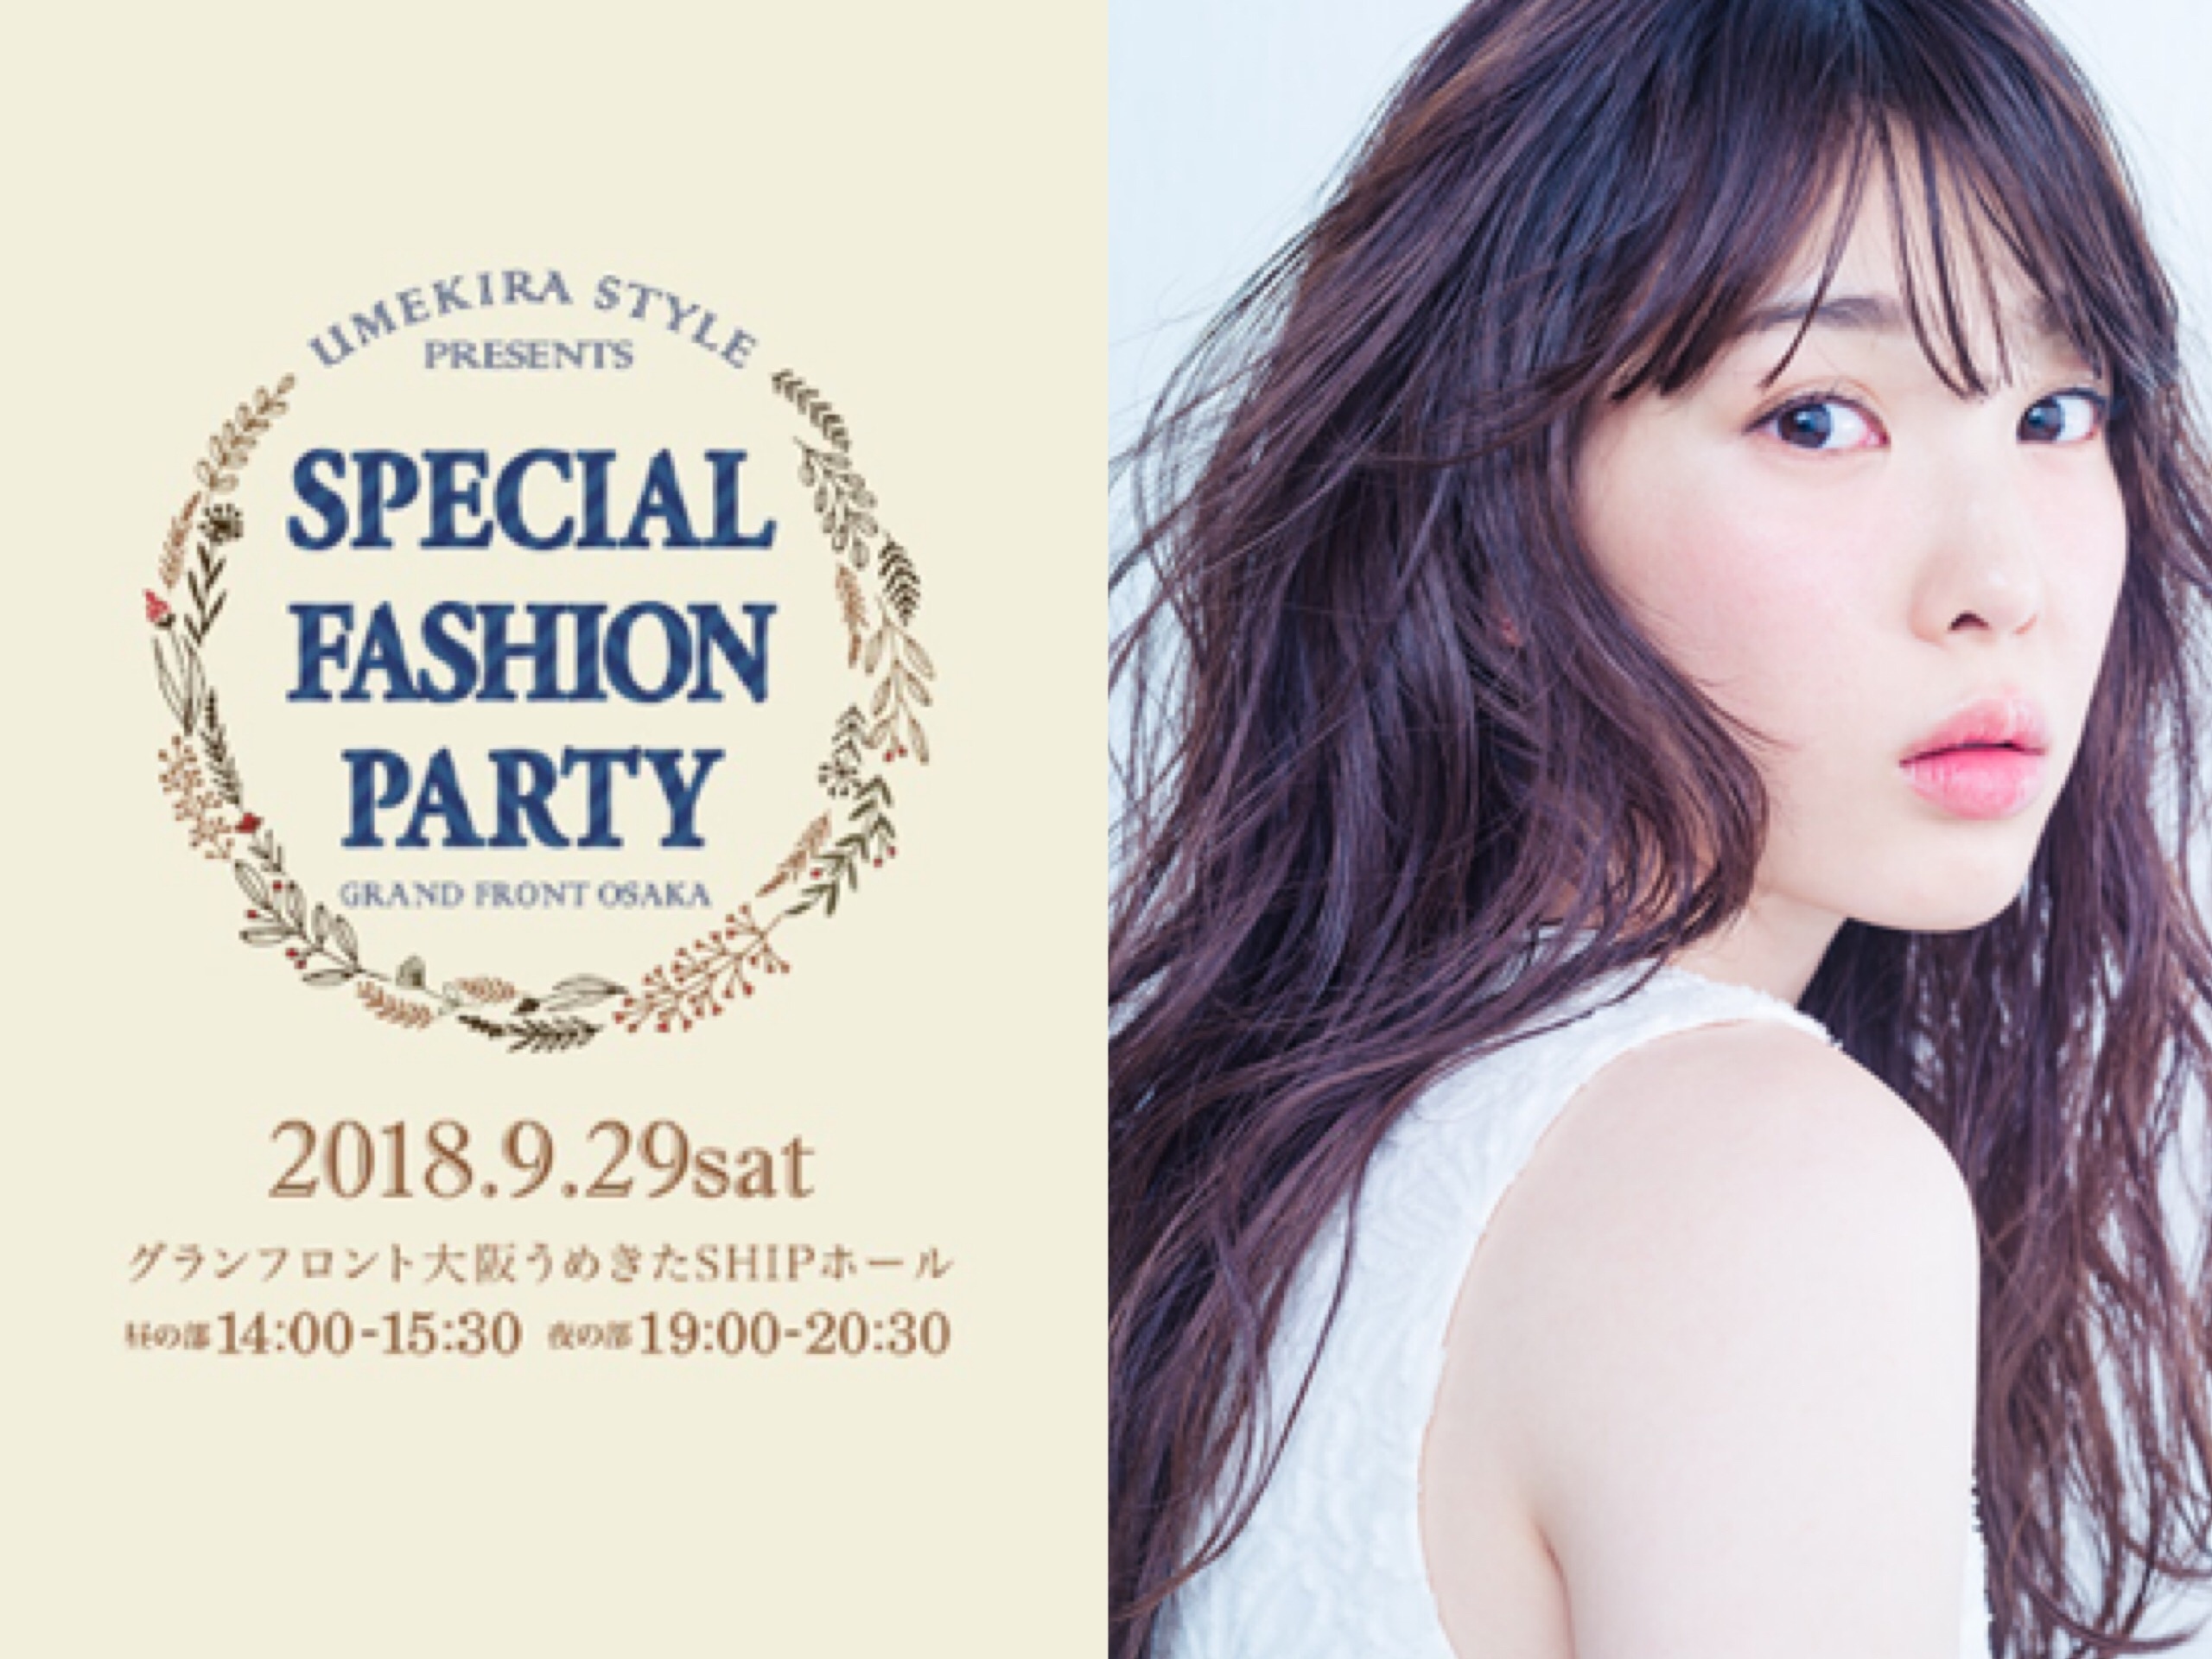 SPECIAL FASHION PARTY